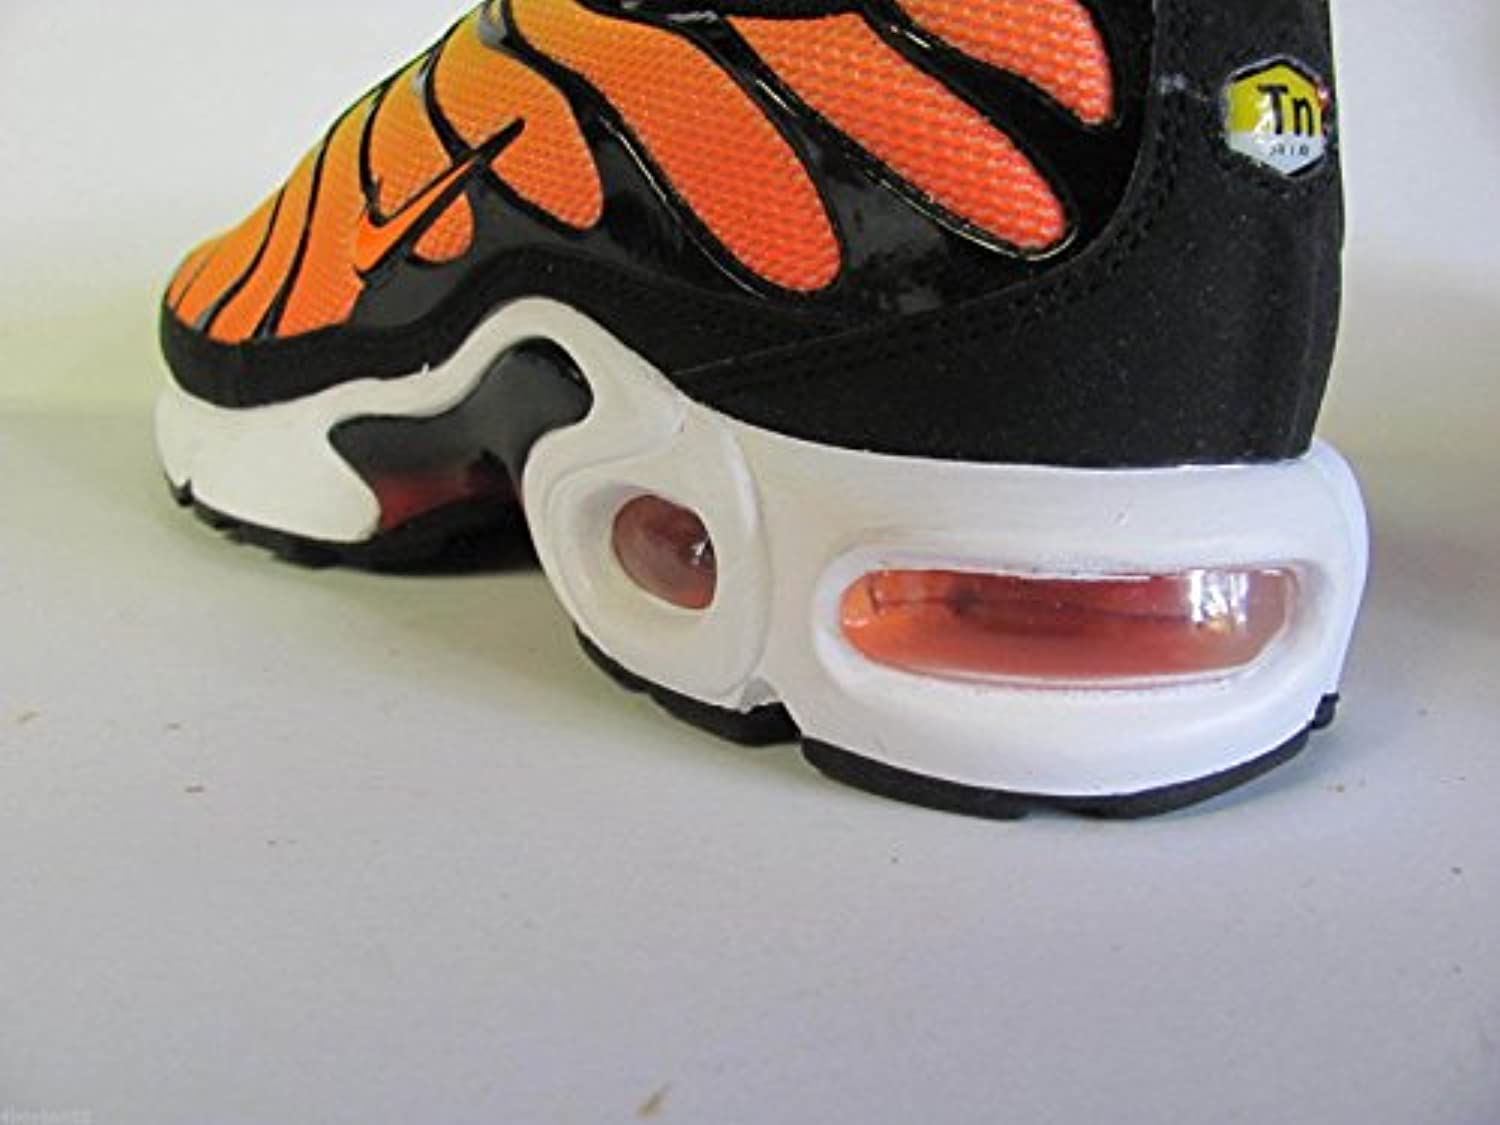 outlet store 42350 71627 Nike Air Max Plus Tiger Gs (Size 6) | $47.99 - Buy today!